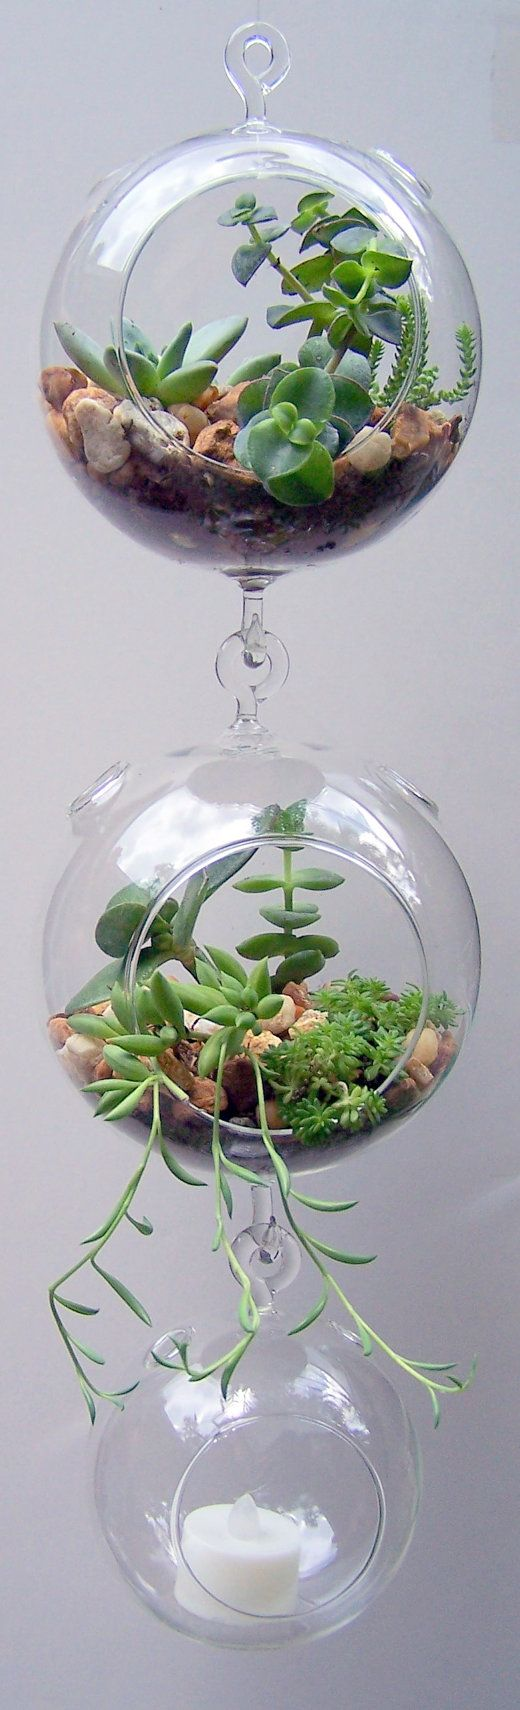 M s de 25 ideas incre bles sobre terrario cactus en for Terrario vertical